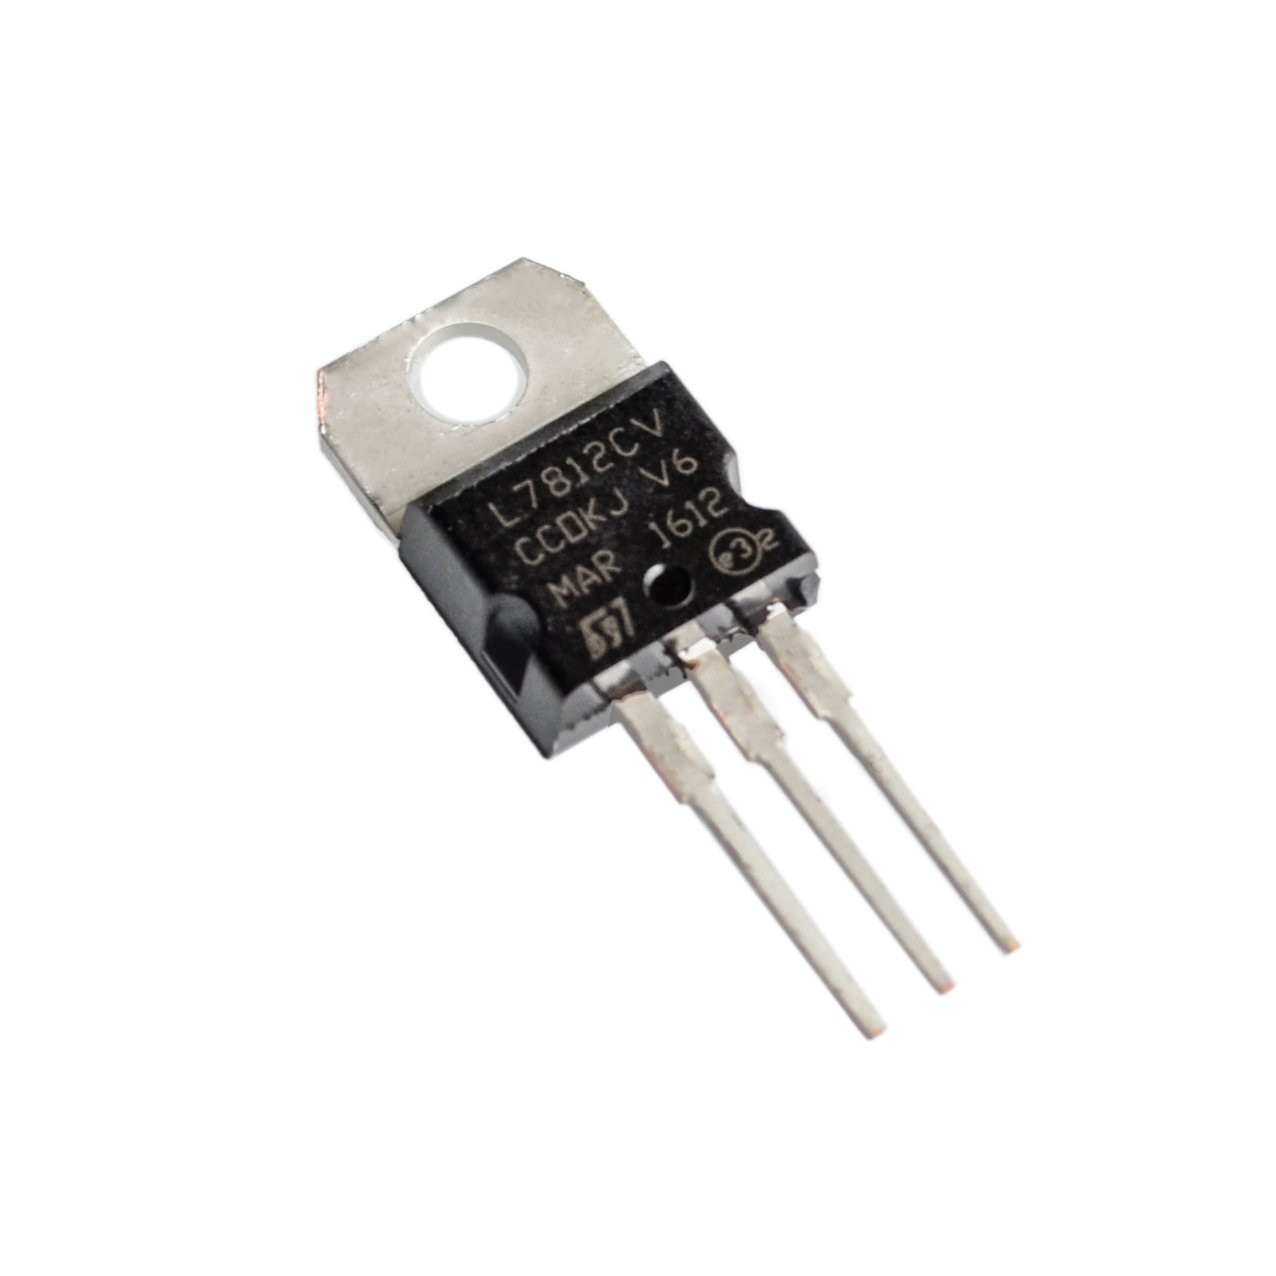 Stmicroelectronics L7812cv L7812 Positive Voltage Lm317 Short Circuit Protection Regulator 25 Pcsneweggcom Ics Output 12v To 220 1 Pack Industrial Scientific